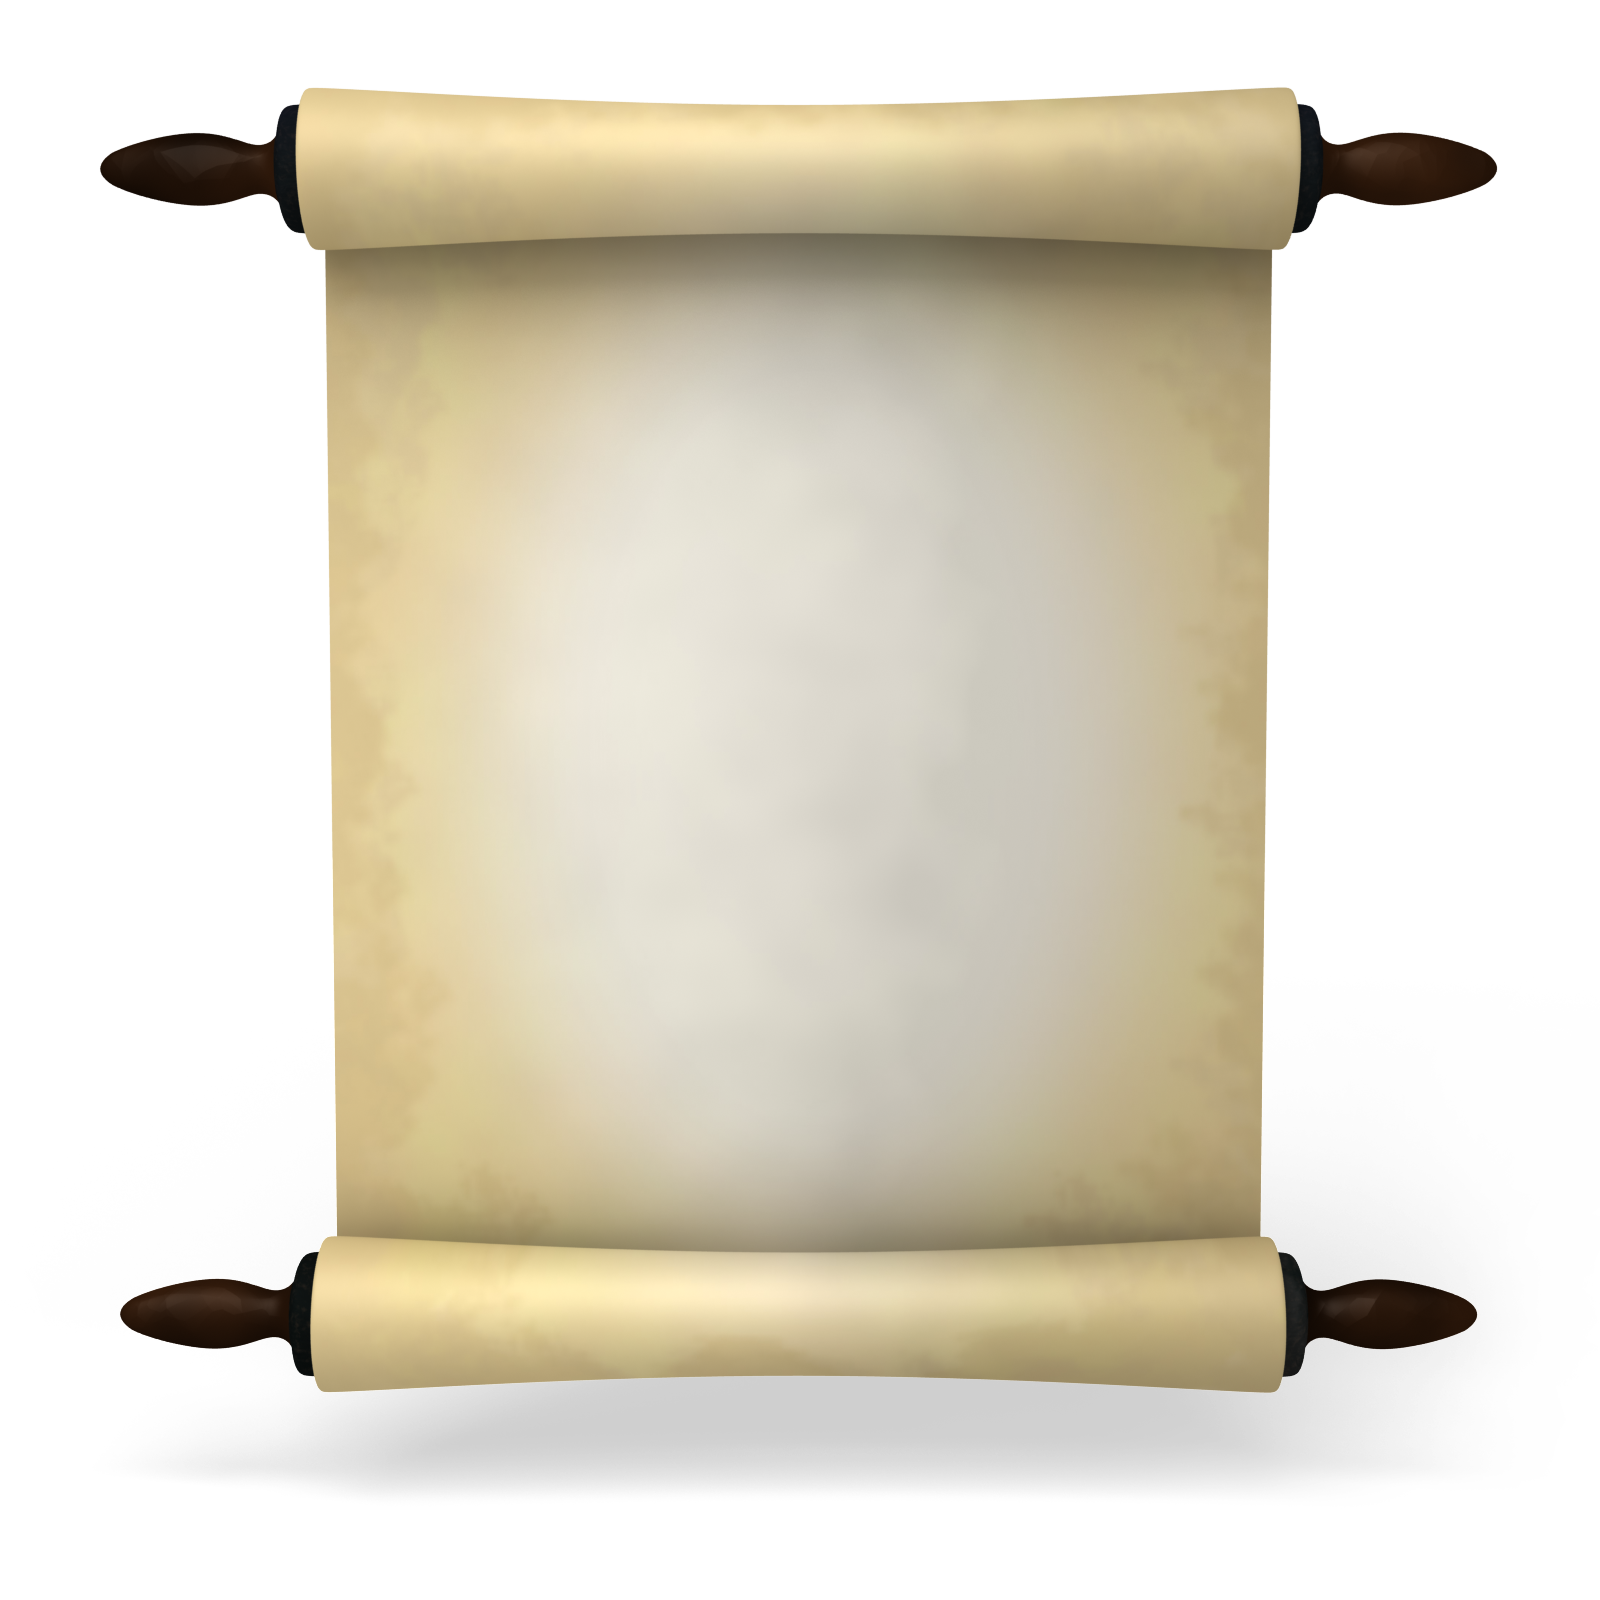 Old Paper Scroll Png image #2